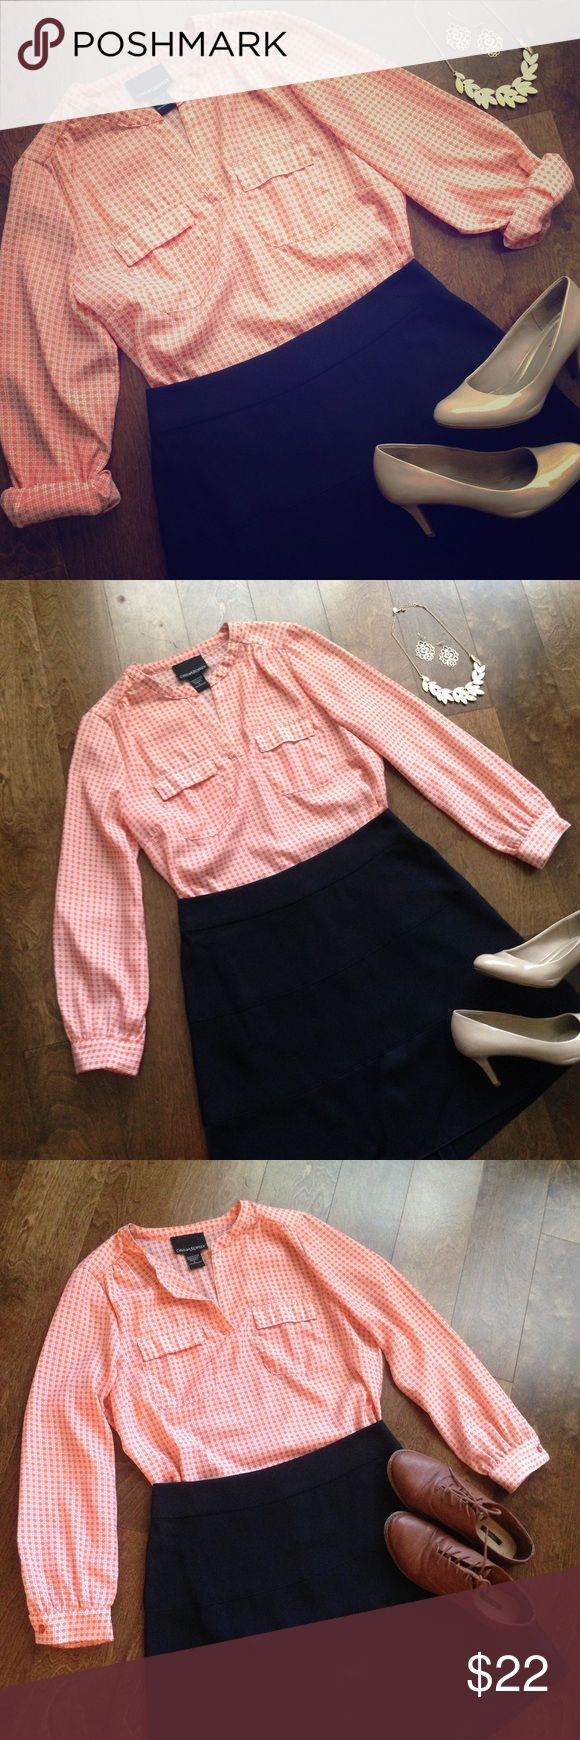 Cynthia Rowley Orange Blouse Great for the office or going out! Perfect for Clemson or Auburn game day!! Cynthia Rowley Tops